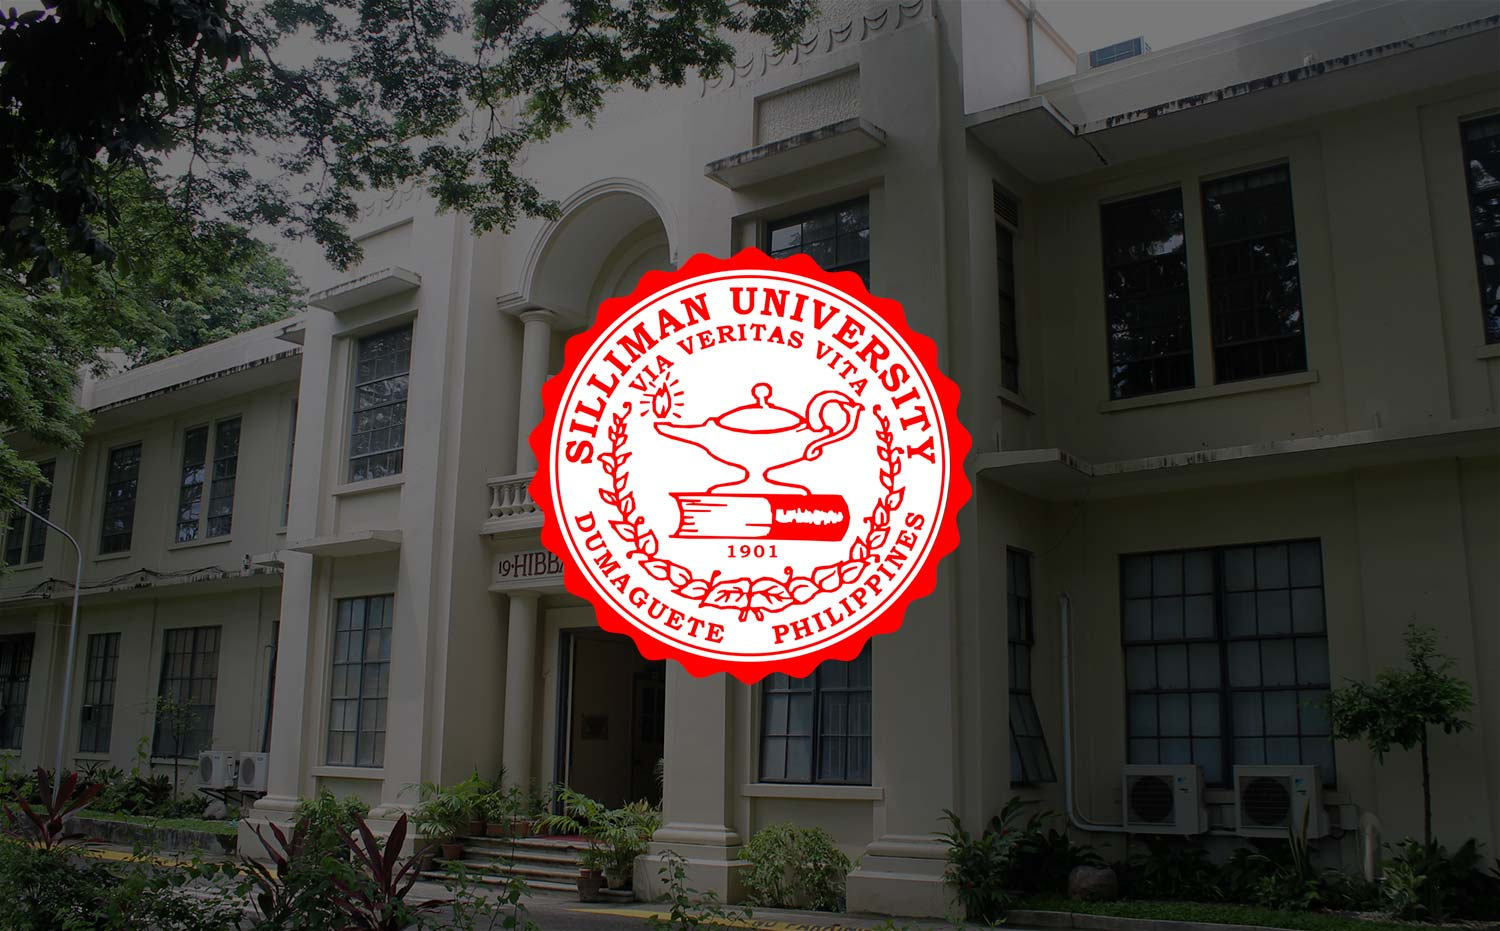 Silliman Establishes Continuing Calamity Response Program